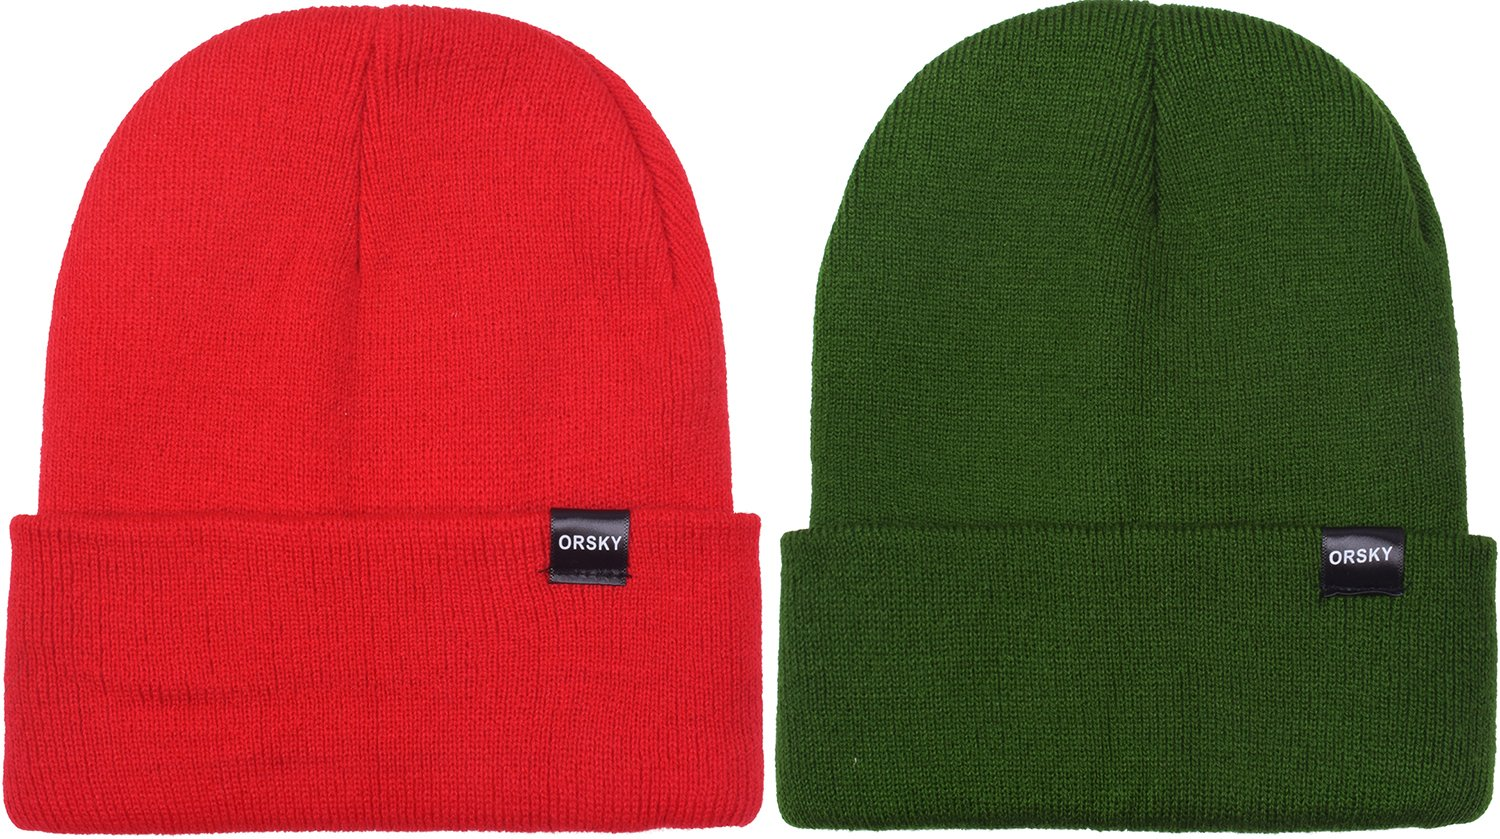 Stylish Beanie Hats for Boys Girls Winter Caps for Kids Beanies Skull Cap 2 Pcs Red/Green One Size